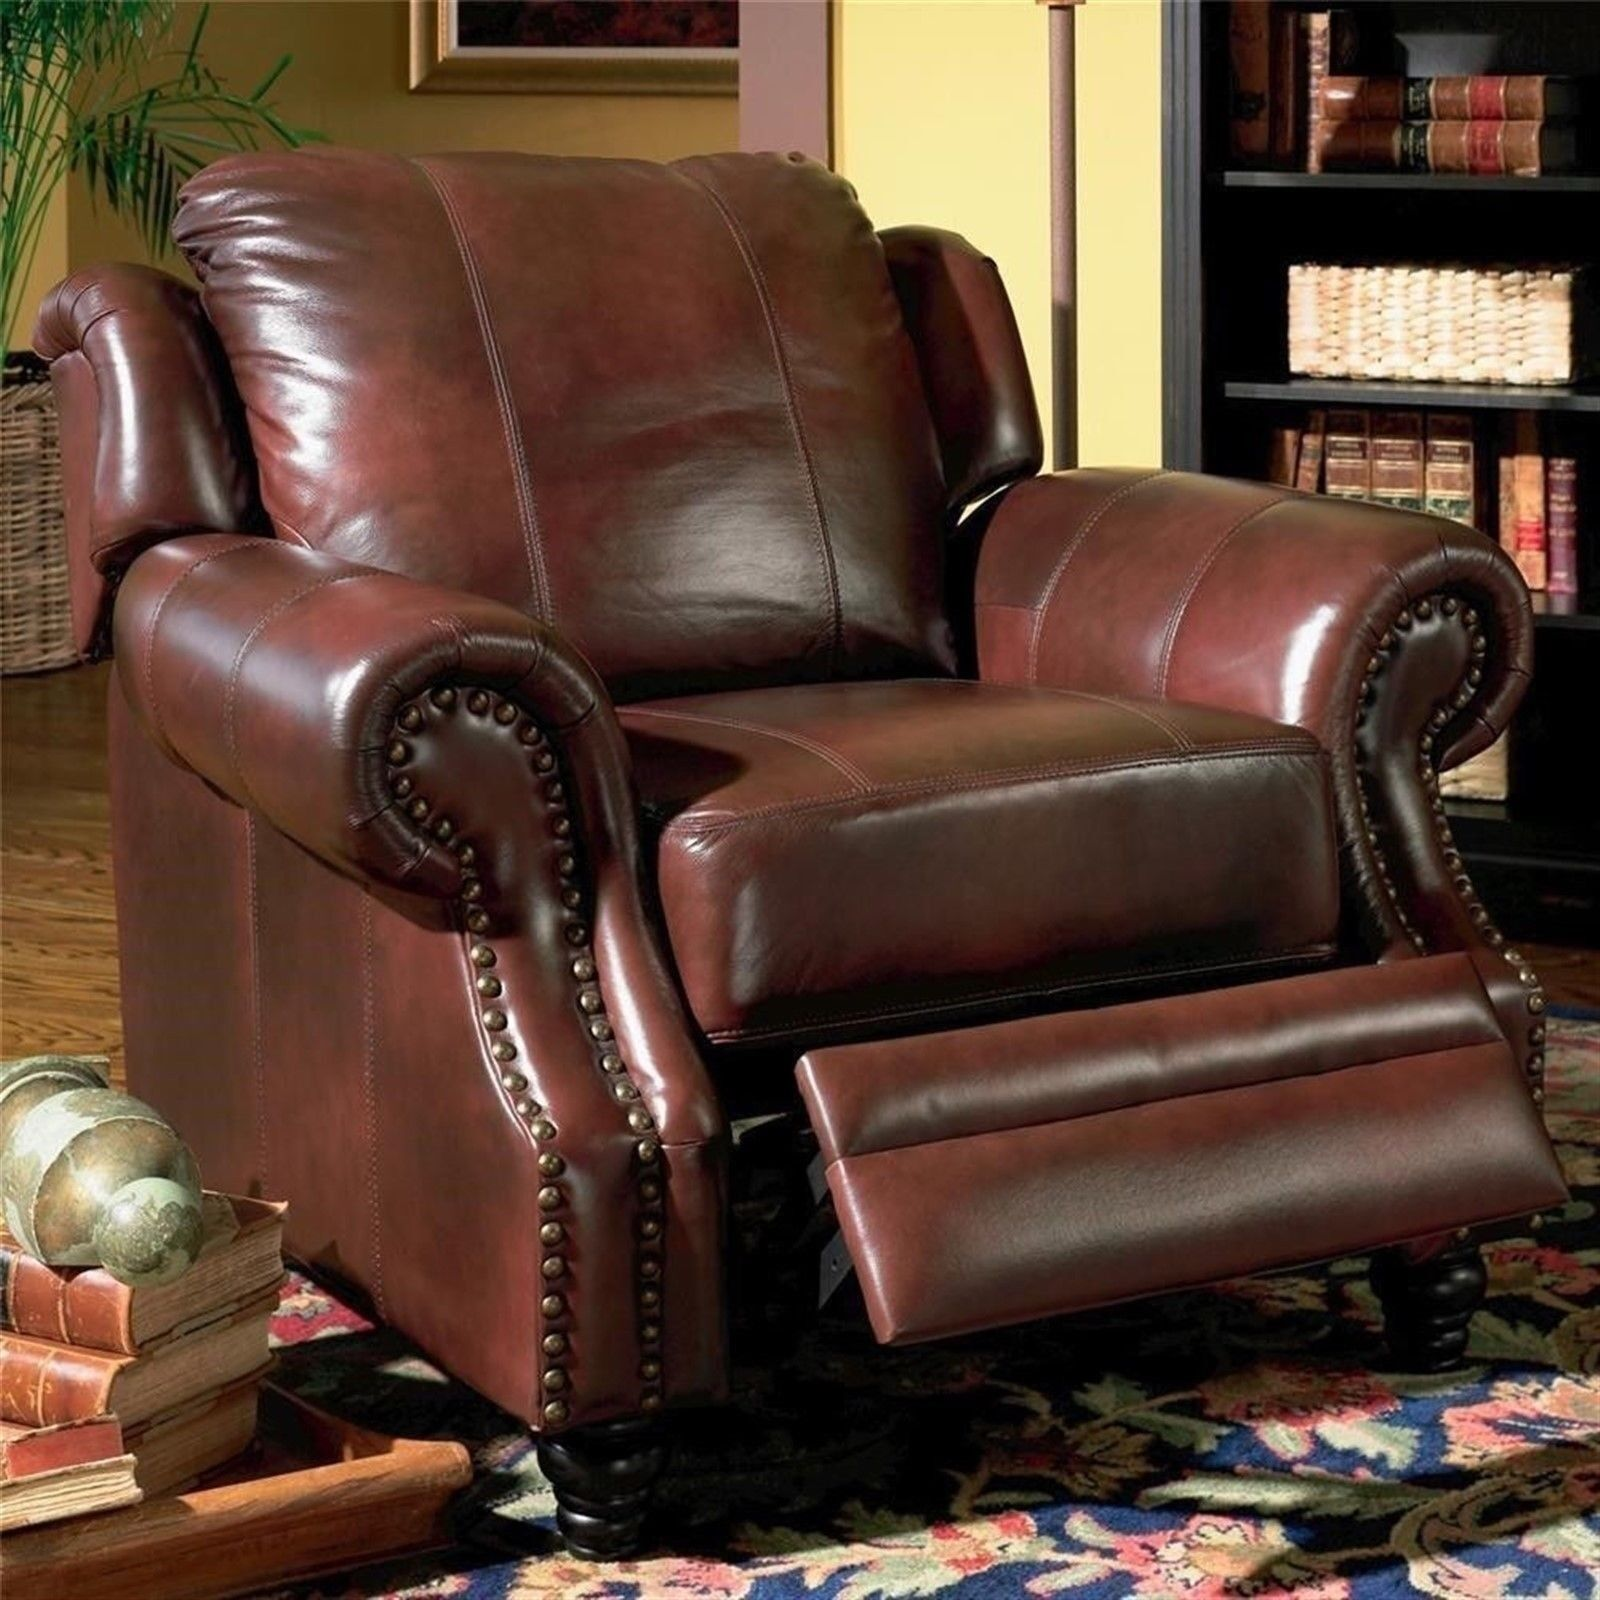 Princeton Traditional Burgundy Genuine Leather Recliner Reclining Arm Chair New 21032150211 Ebay